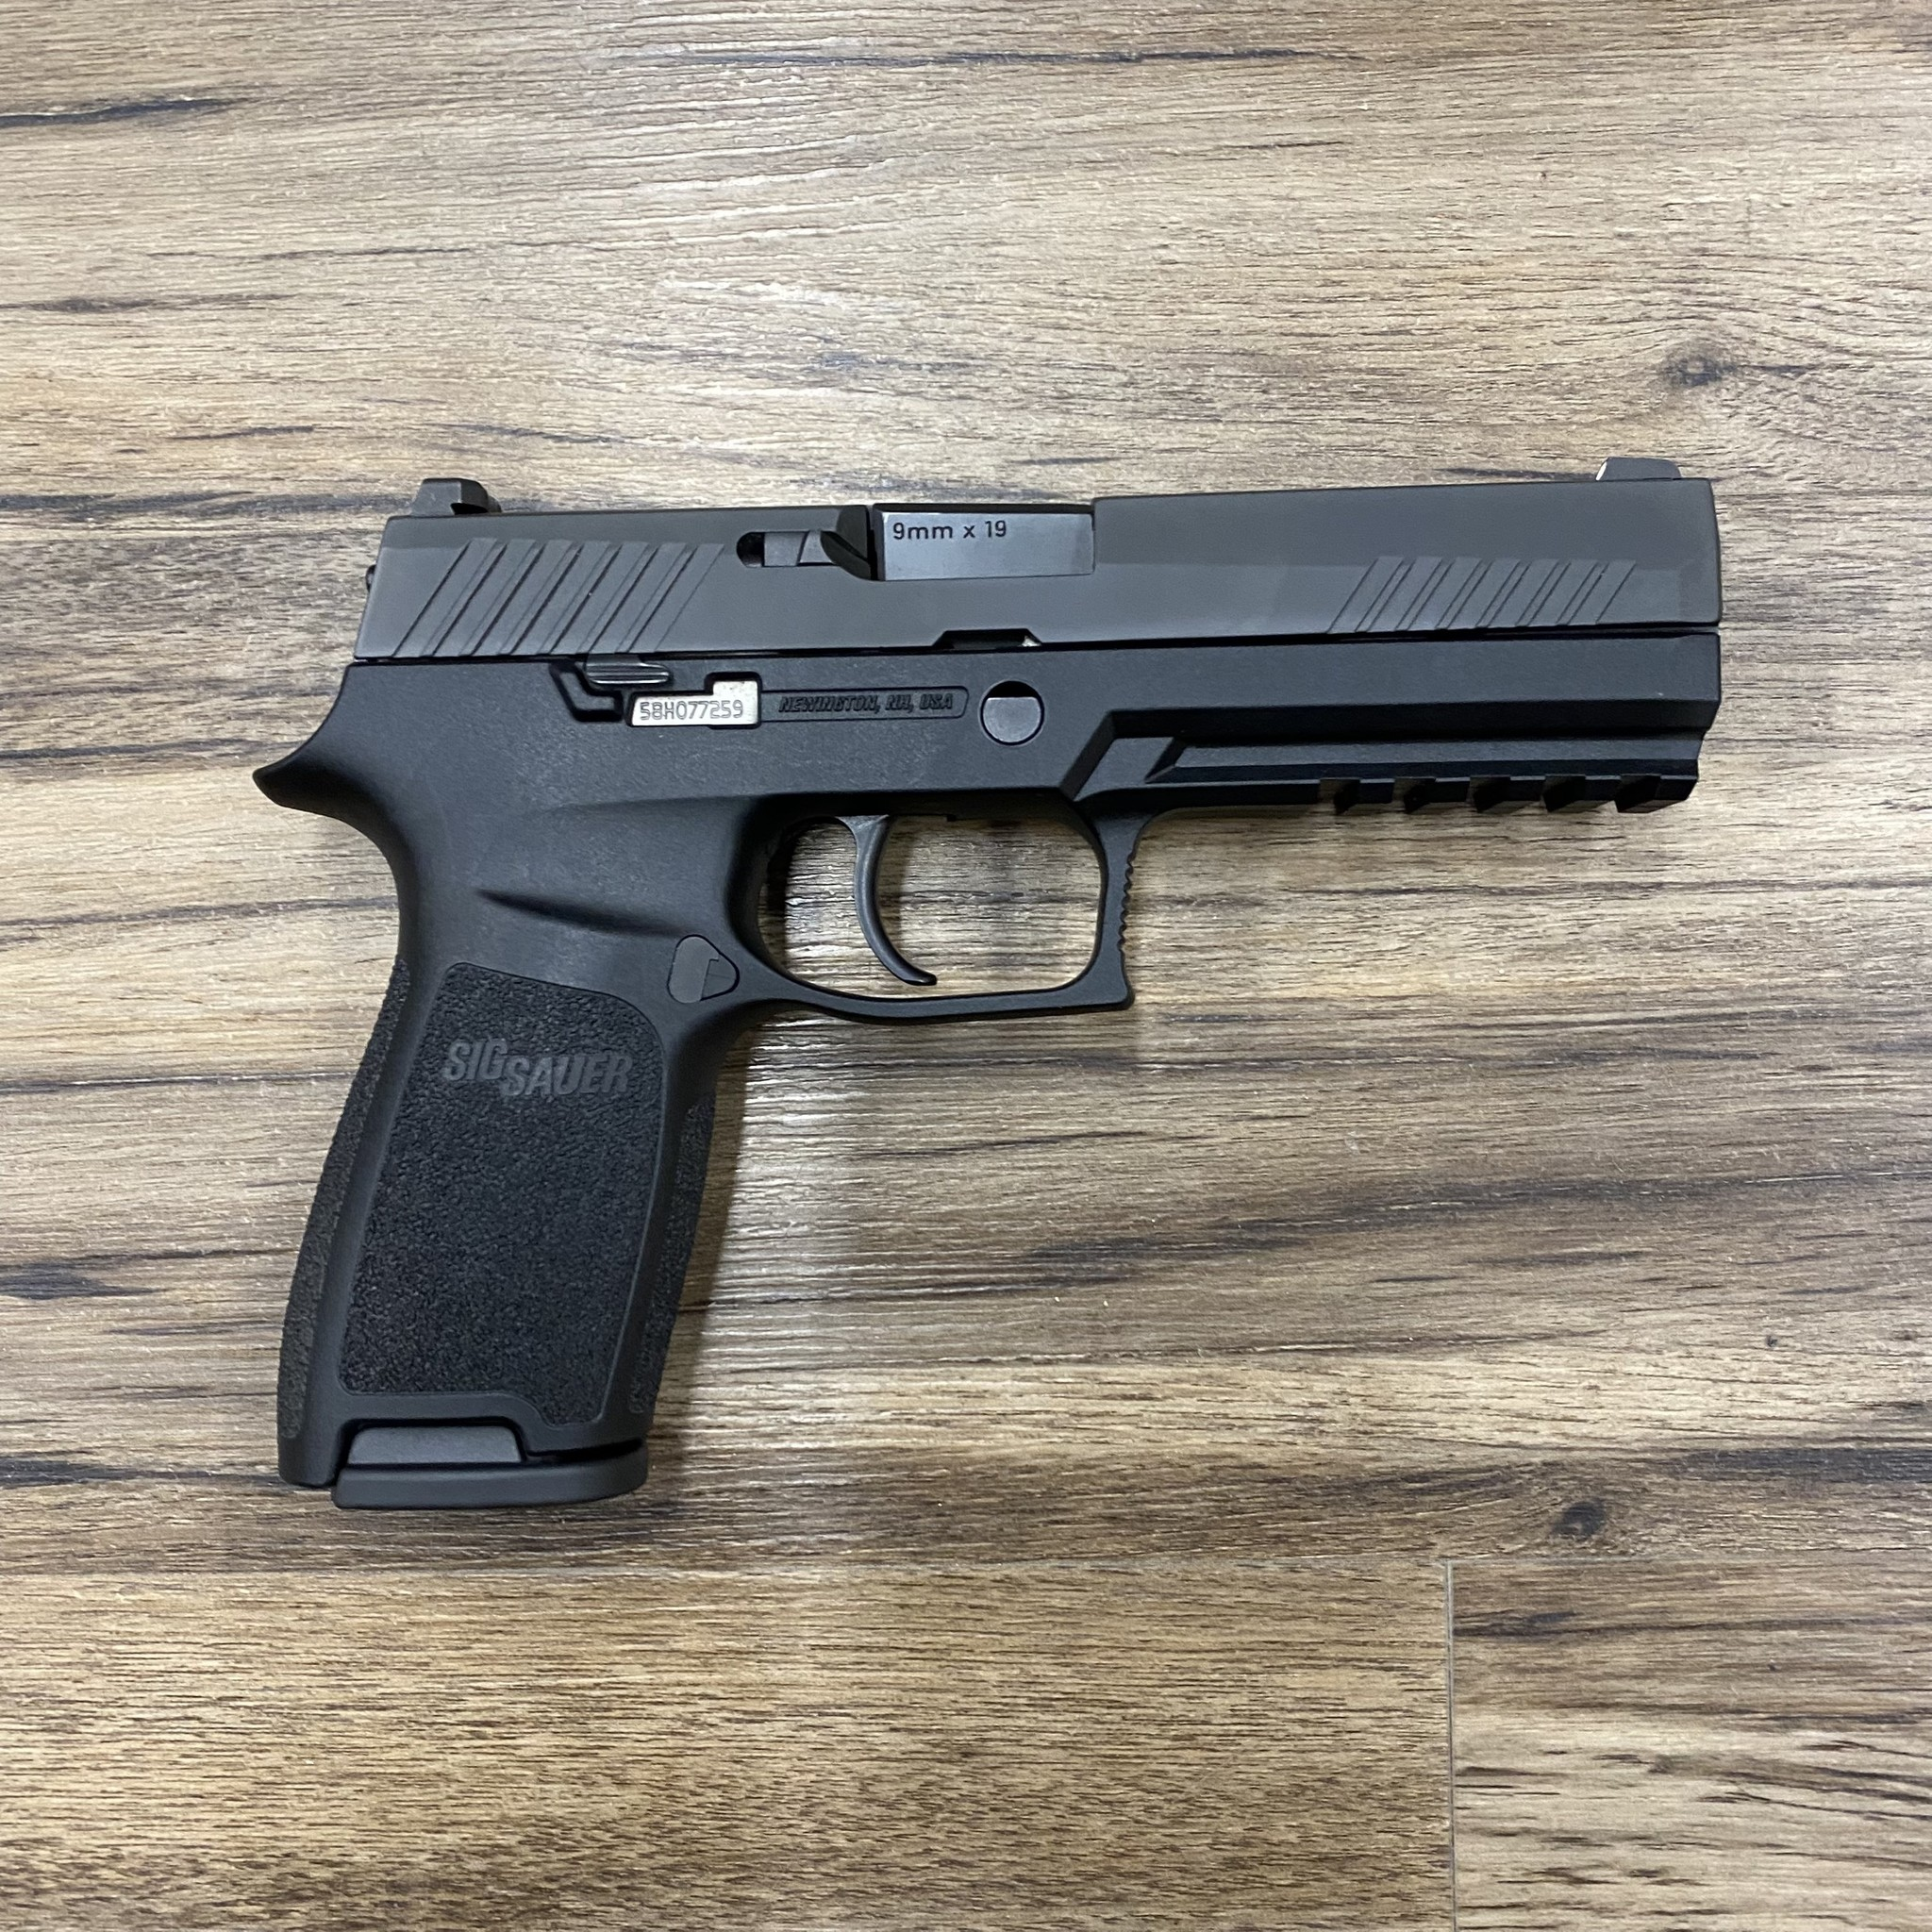 SIG SAUER SIG SAUER P320F PISTOL, 9MM, BLACK, W/ 3 MAGS, PRE-OWNED